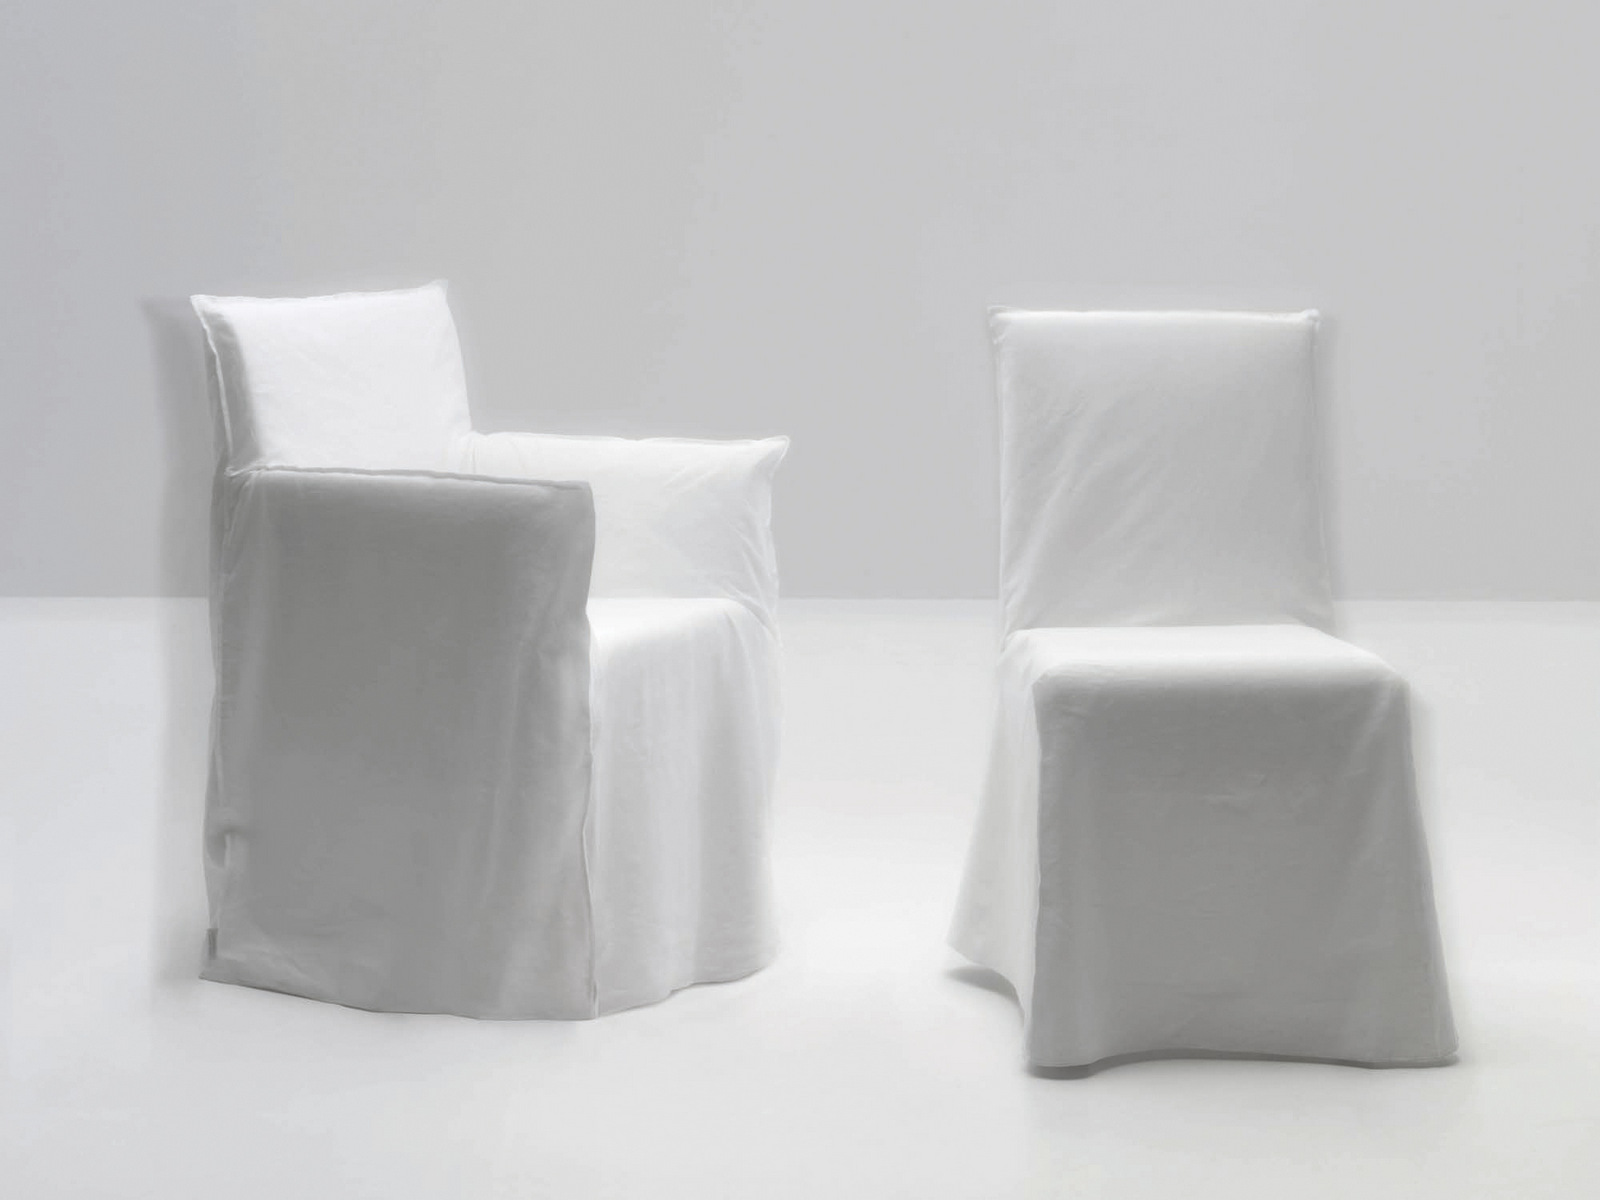 RESTAURANT CHAIR WITH REMOVABLE COVER GHOST 23 GHOST COLLECTION BY GERVASONI